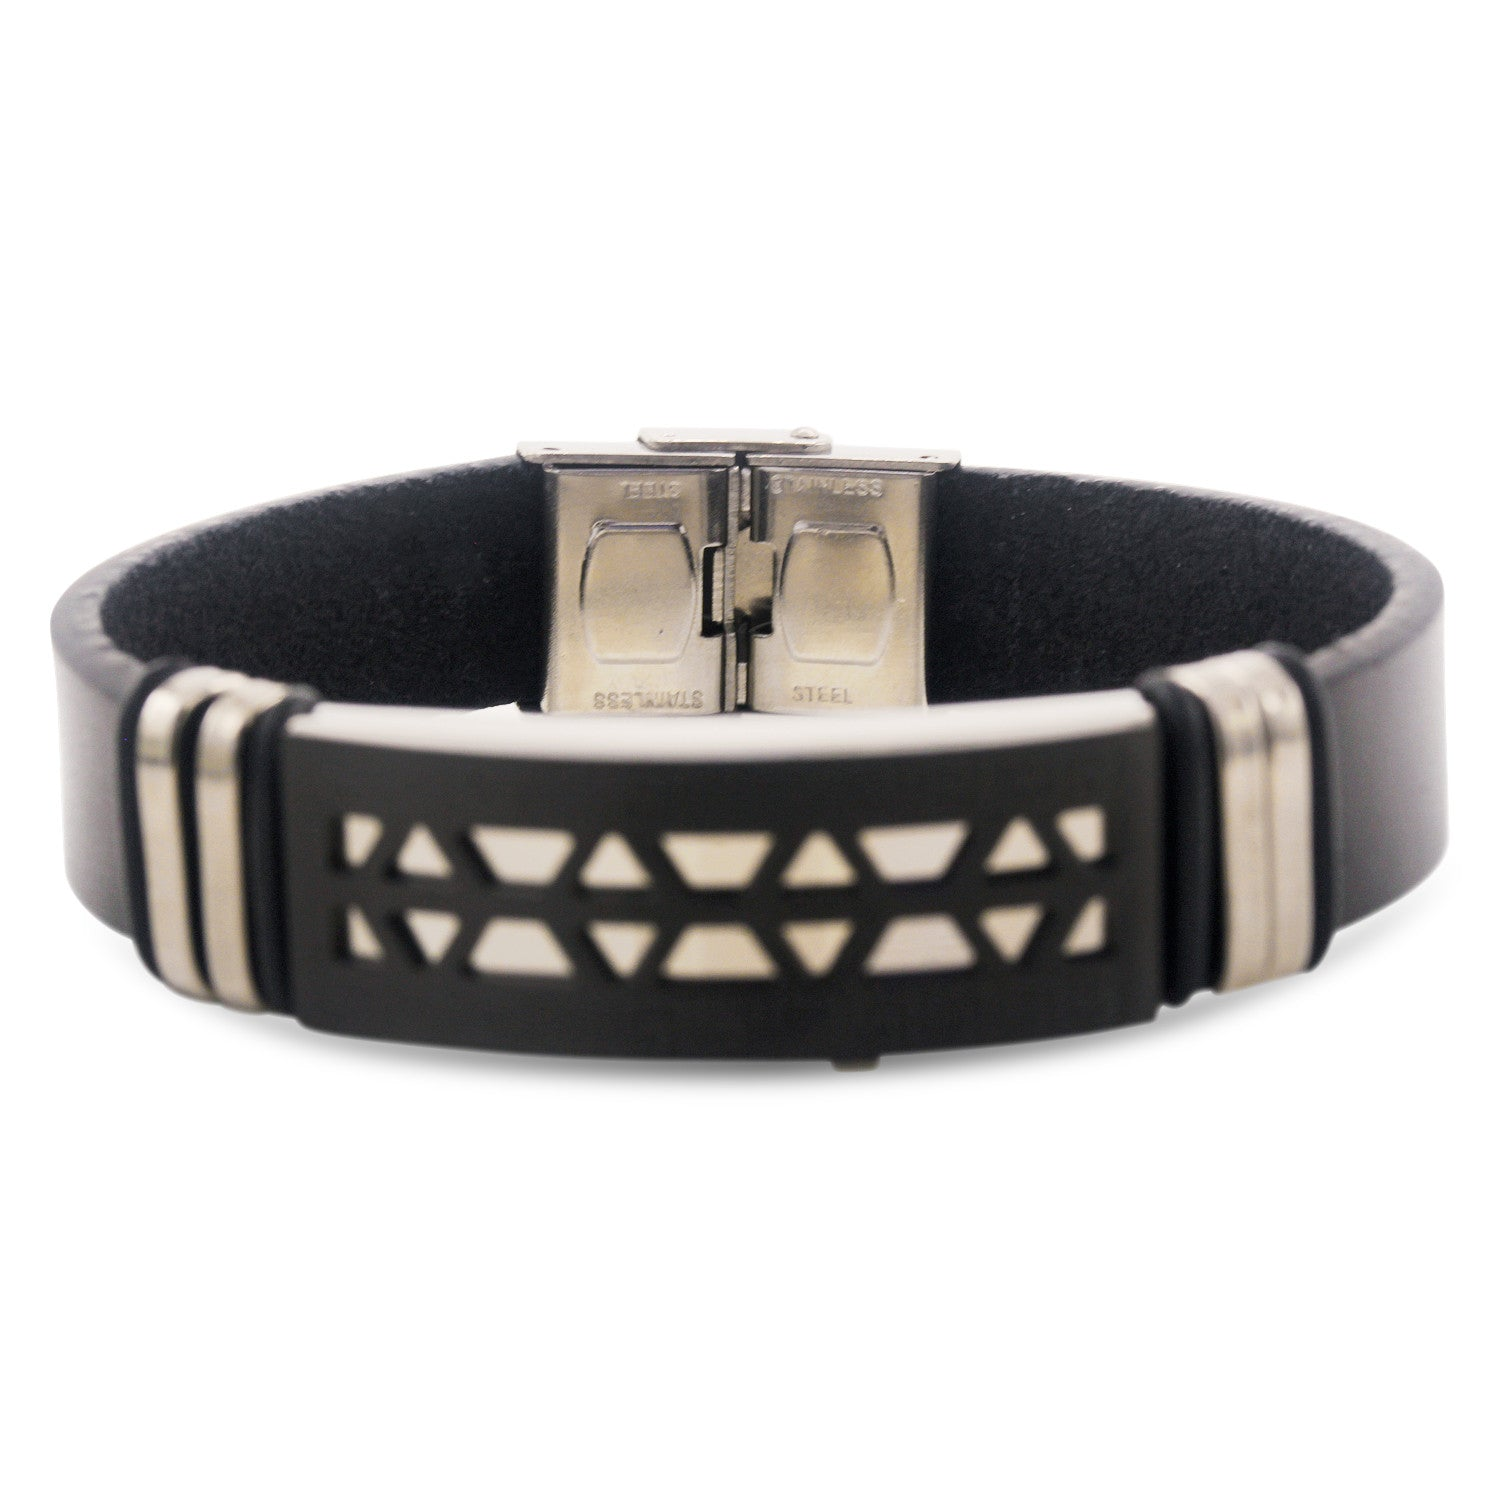 Stainless Steel Black Two Tone Design Leather Bracelet